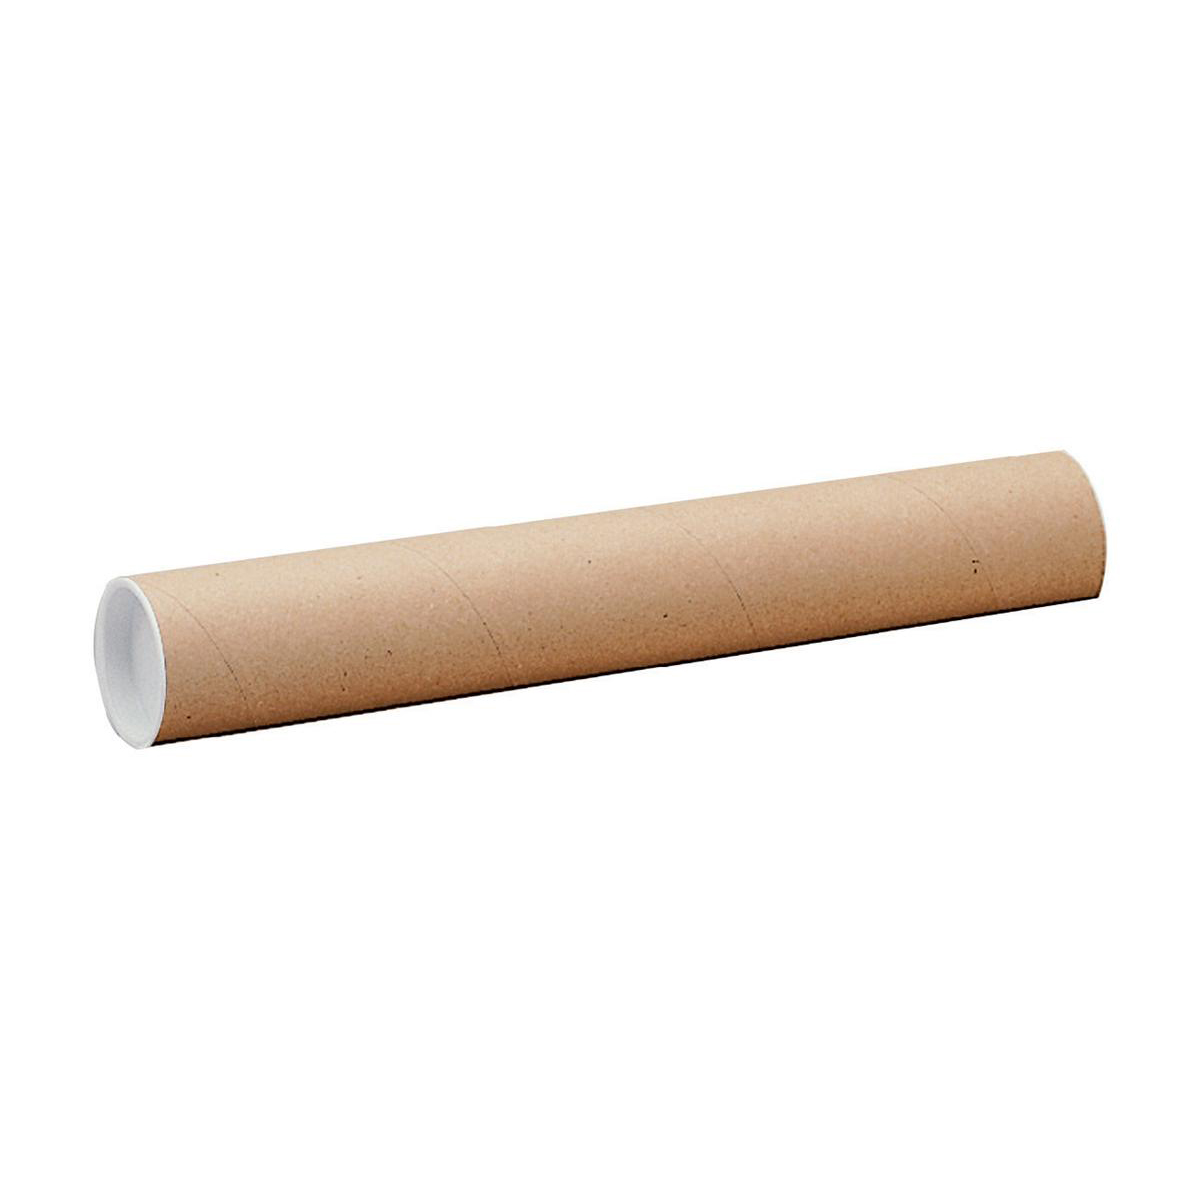 Postal Tube Cardboard with Plastic End Caps A1 L625xDia.50mm RBL10520  Pack 25